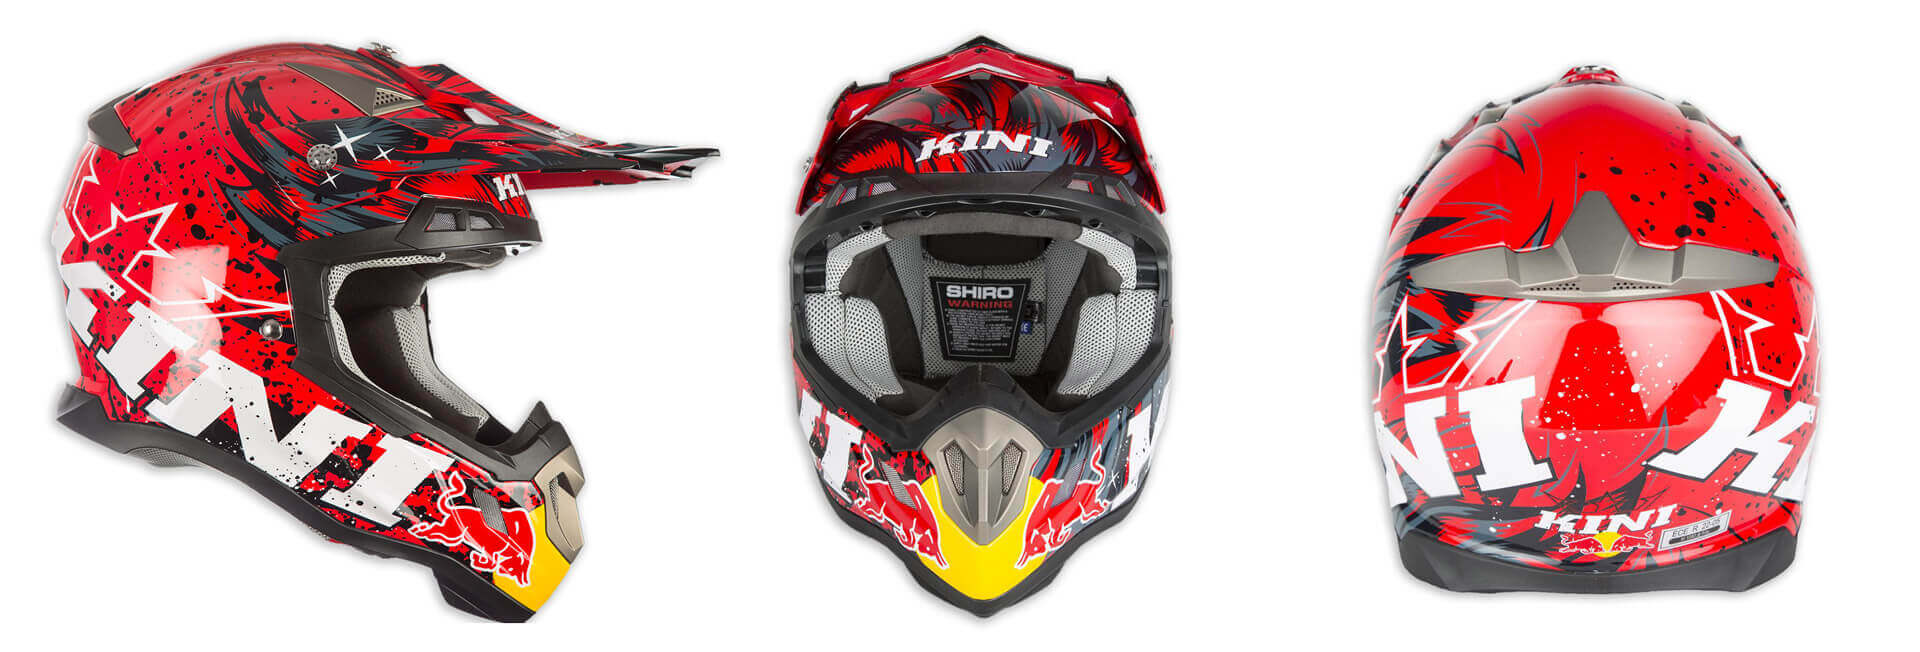 kini-red-bull-crosshelm-revolution-helm-ansichten